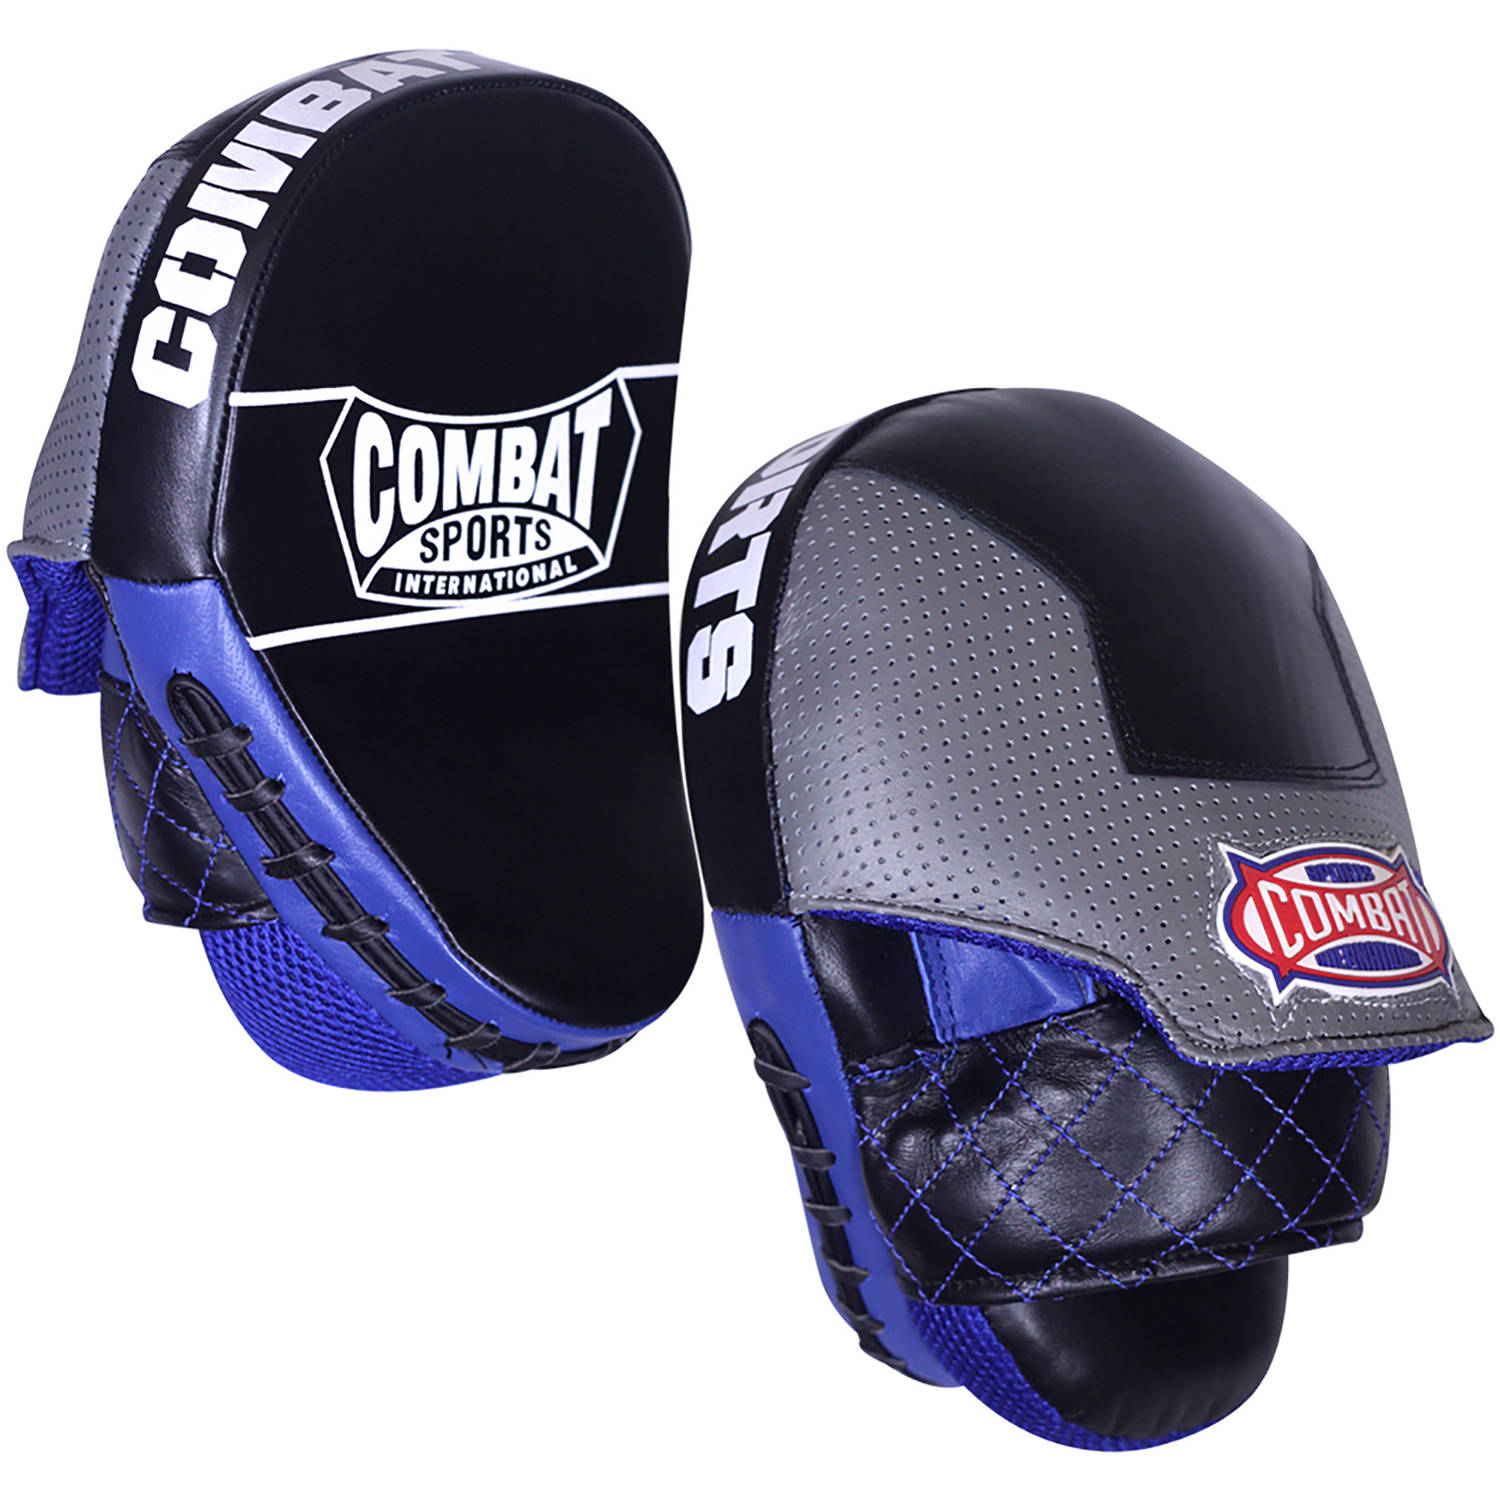 Combat Sports Contoured Punch Mitts by Ringside